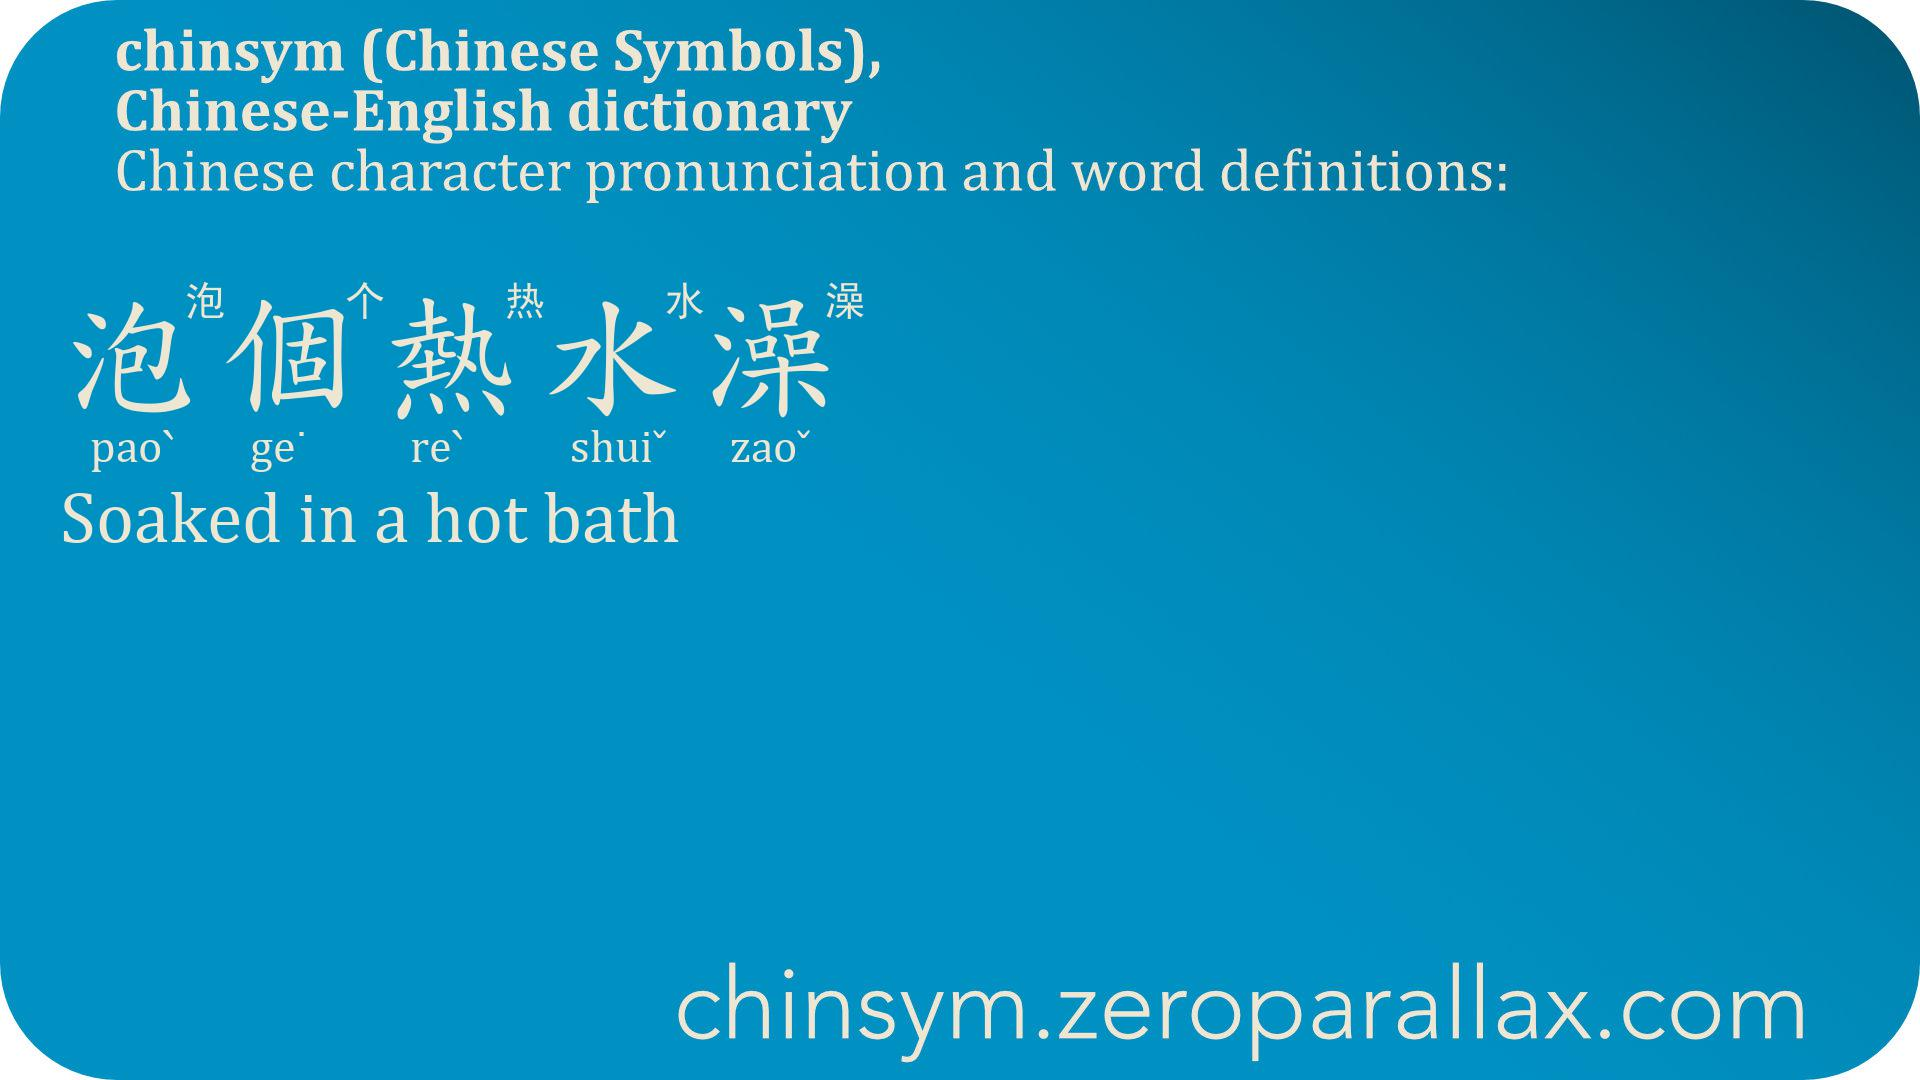 泡個熱水澡  (paoˋ ge˙ reˋ shuiˇ zaoˇ) 泡个热水澡 : Soaked in a hot bath. chinsym.zeroparallax.com